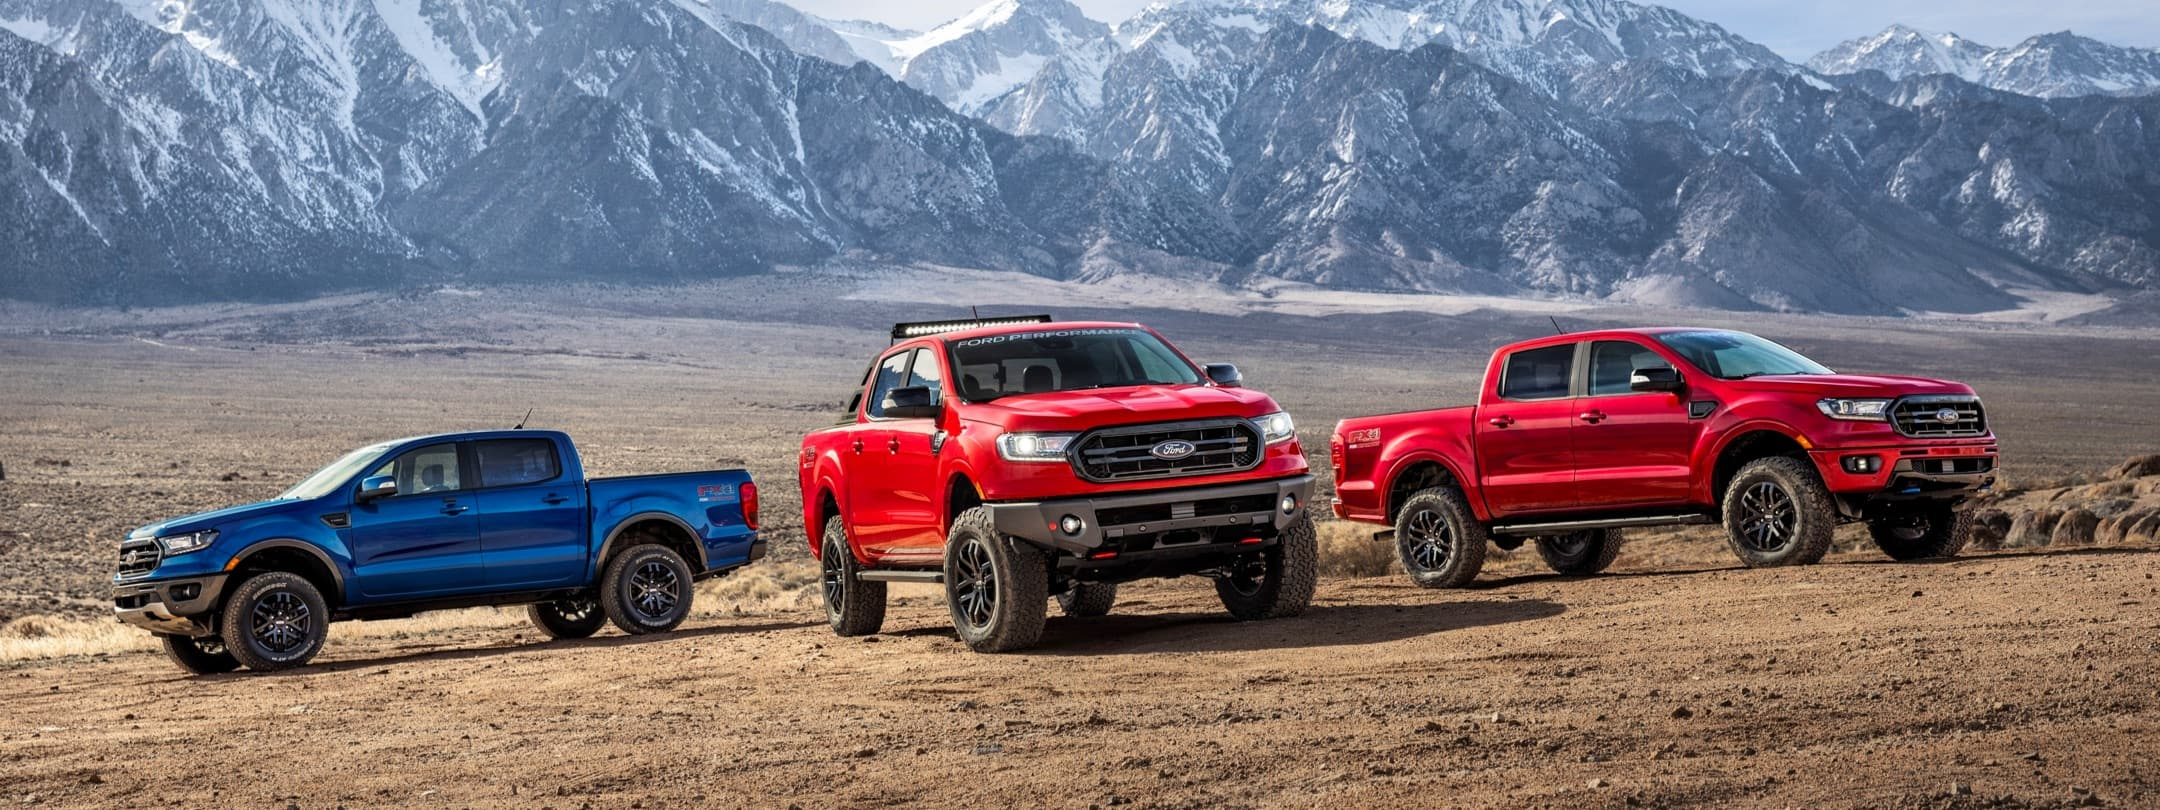 Ford Trucks with mountains in the background